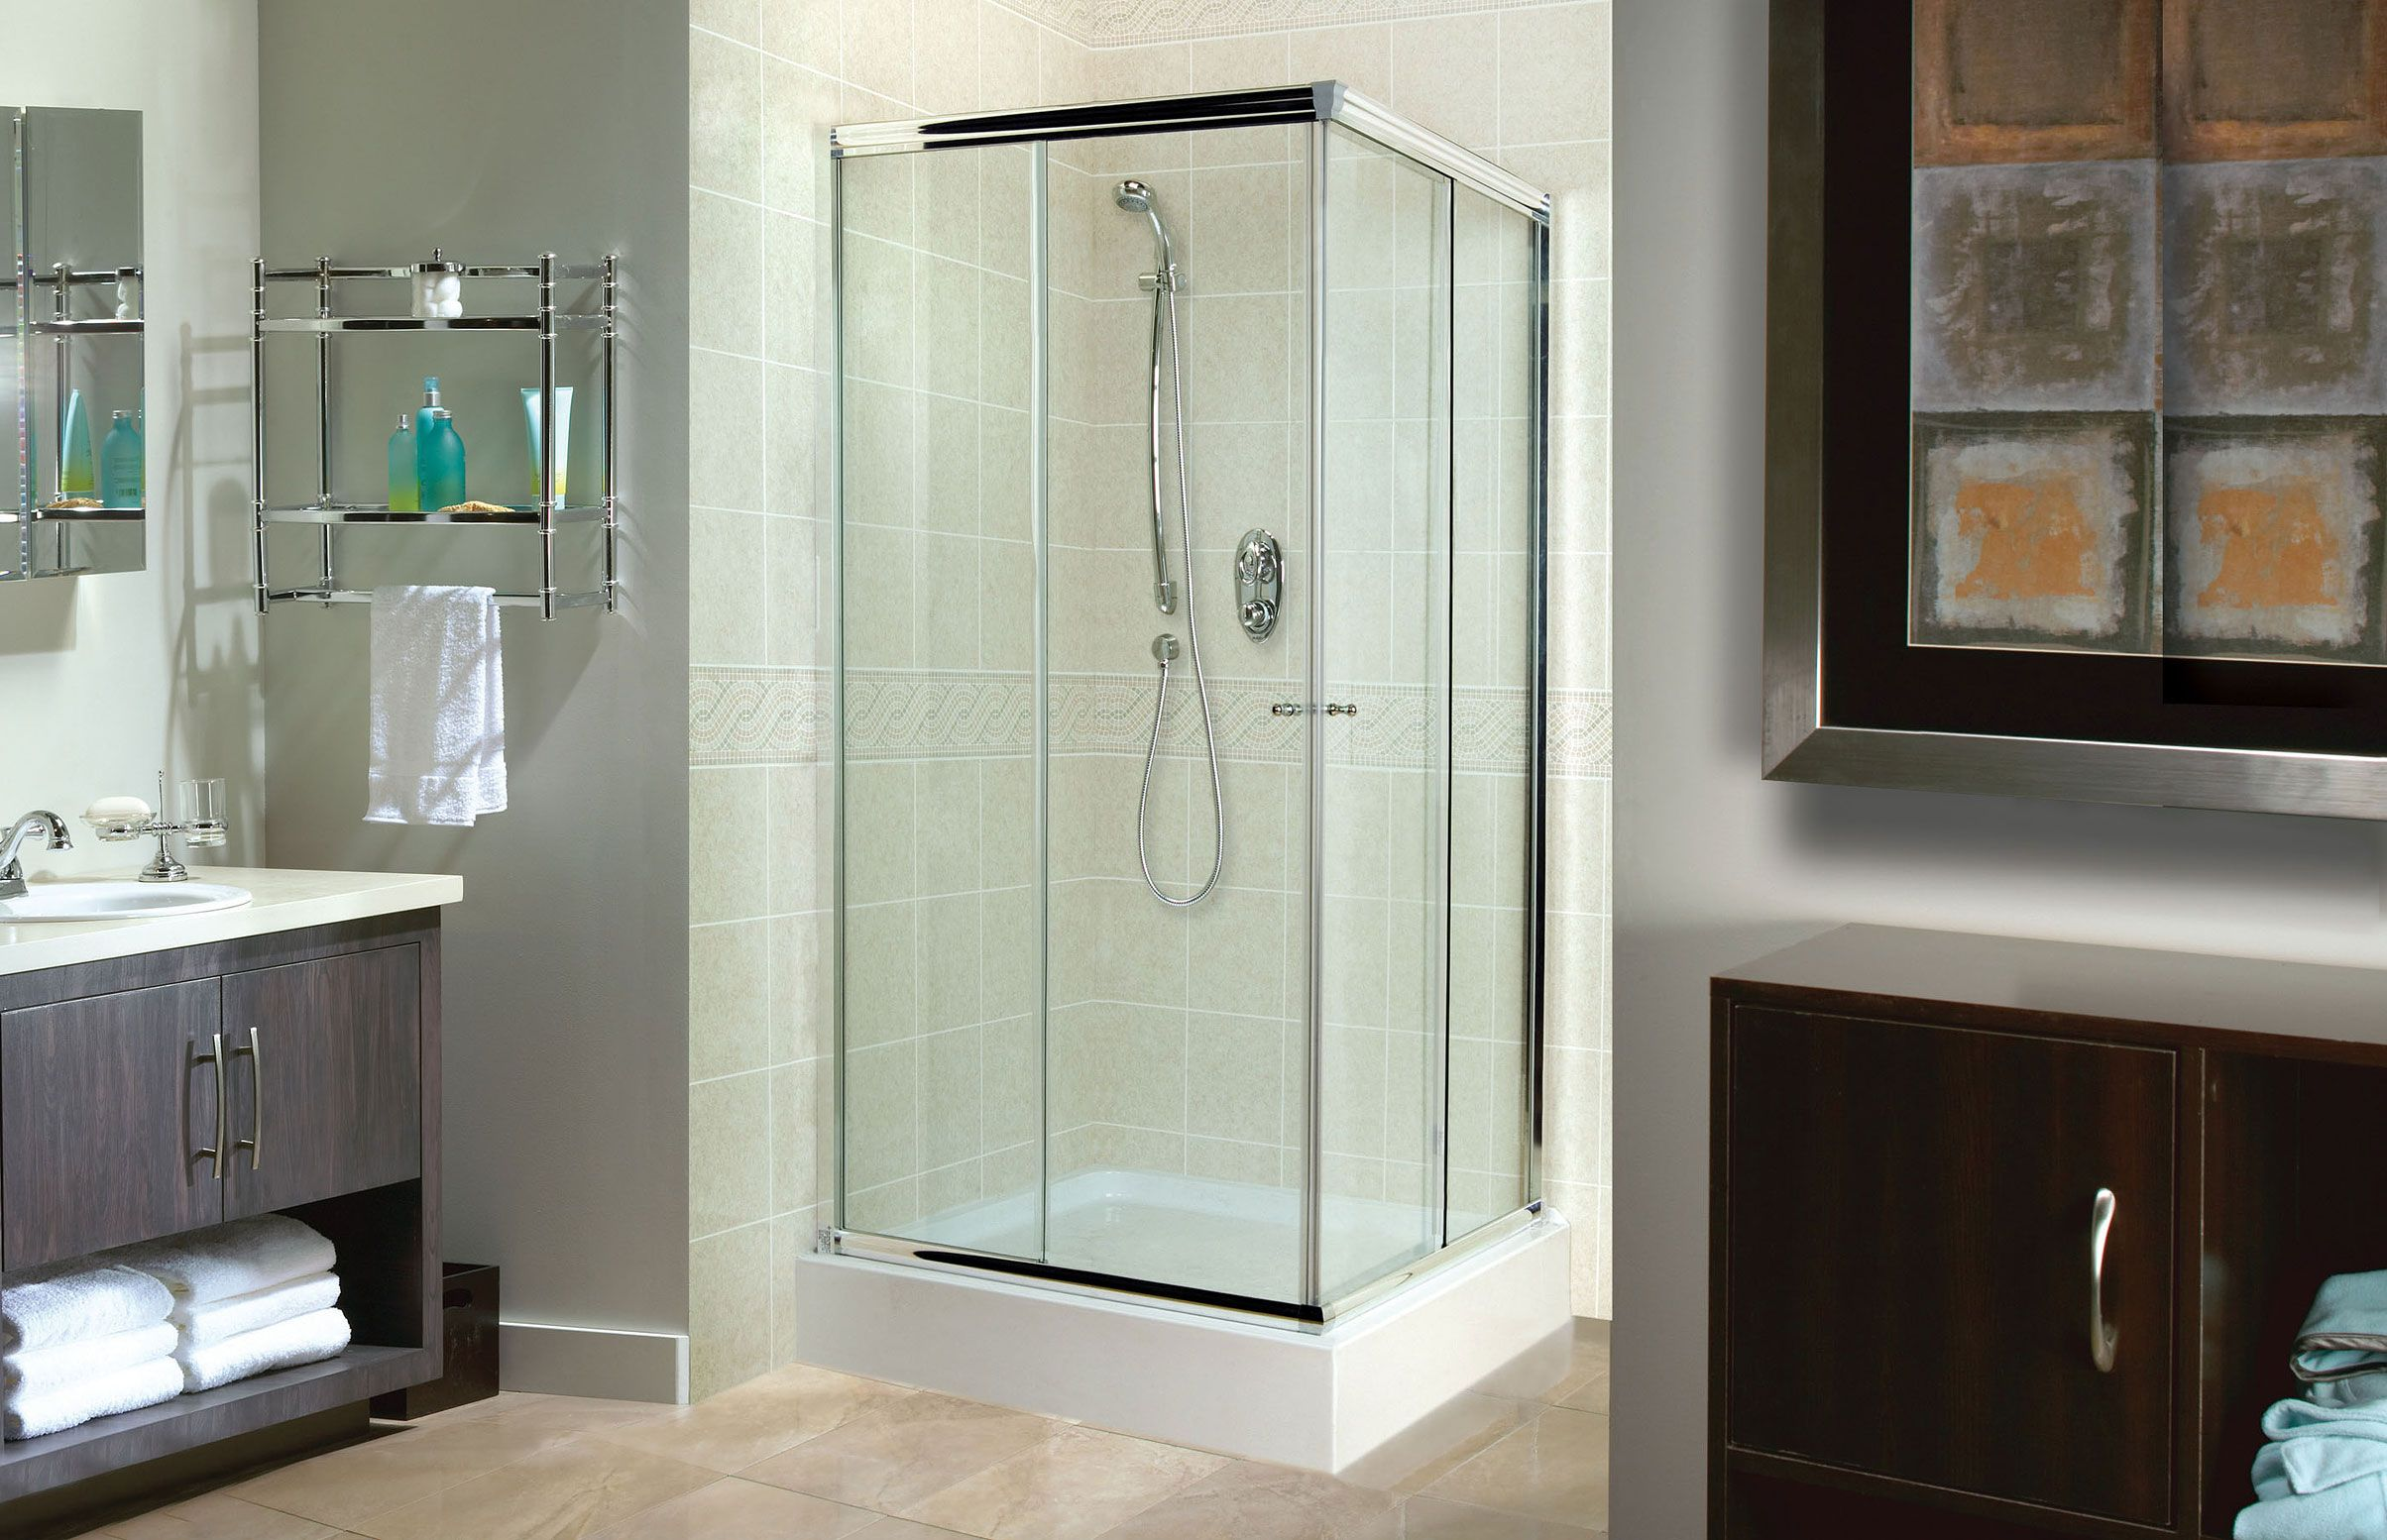 corner shower enclosure kits. Tigris Square Corner or Glass enclosures shower  Advanta by MAAX brand An affordable Everyday product for your bathroom Shower kit PRACTICAL STYLISH